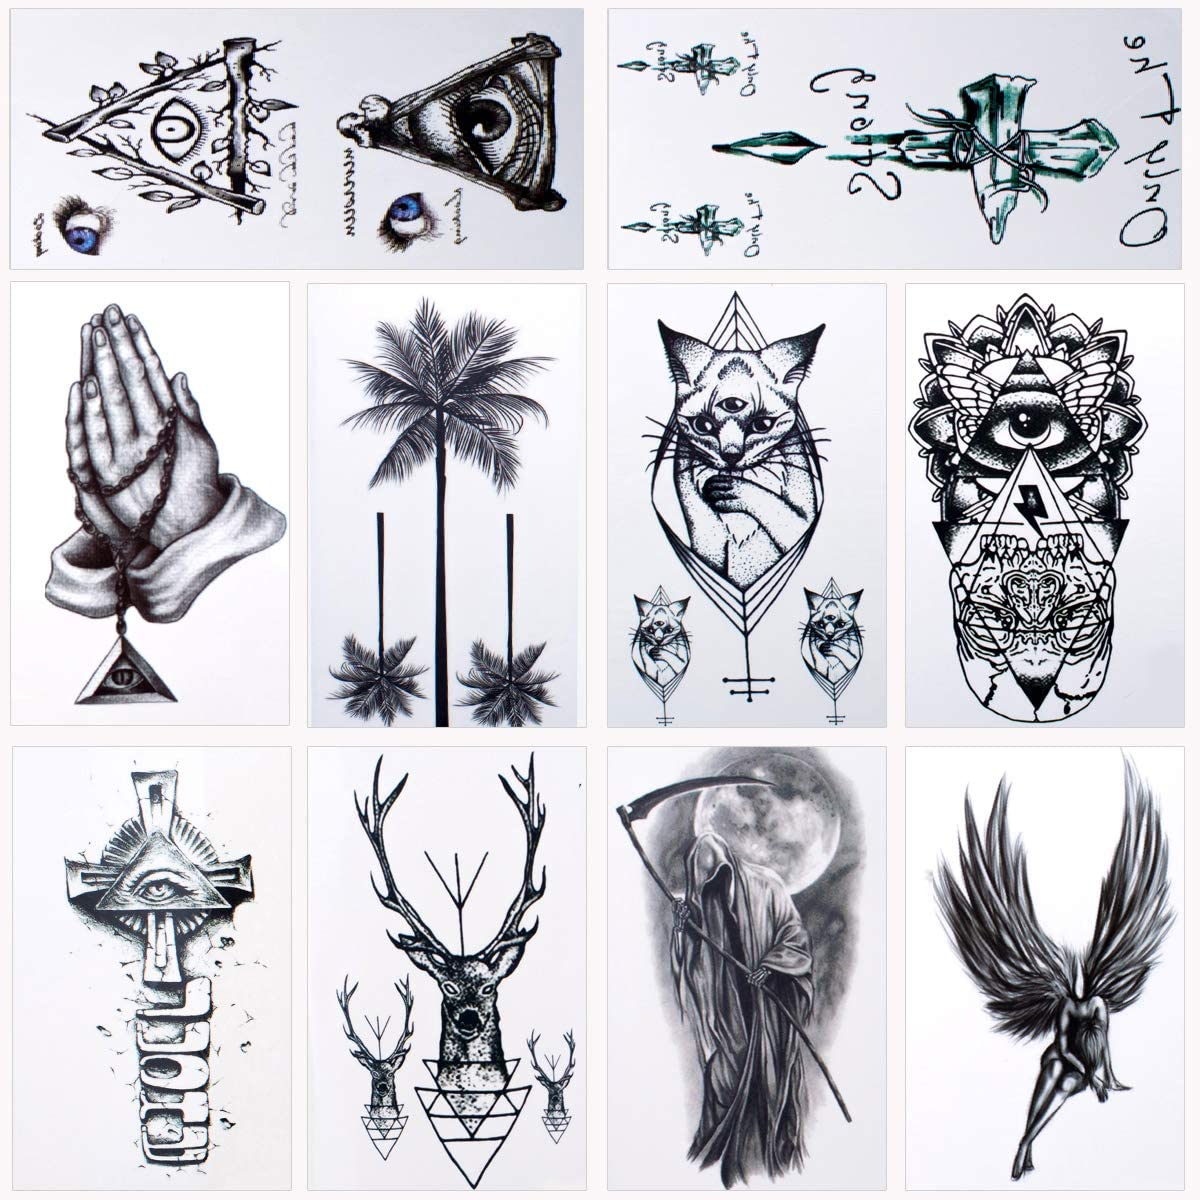 Szhuiher 36 Sheets Waterproof Temporary Tattoos Fake Tattoos Body Art Tattoo Stickers Black Transfer Tattoos For Arms Shoulders Chest Back Legs Amazon Co Uk Beauty